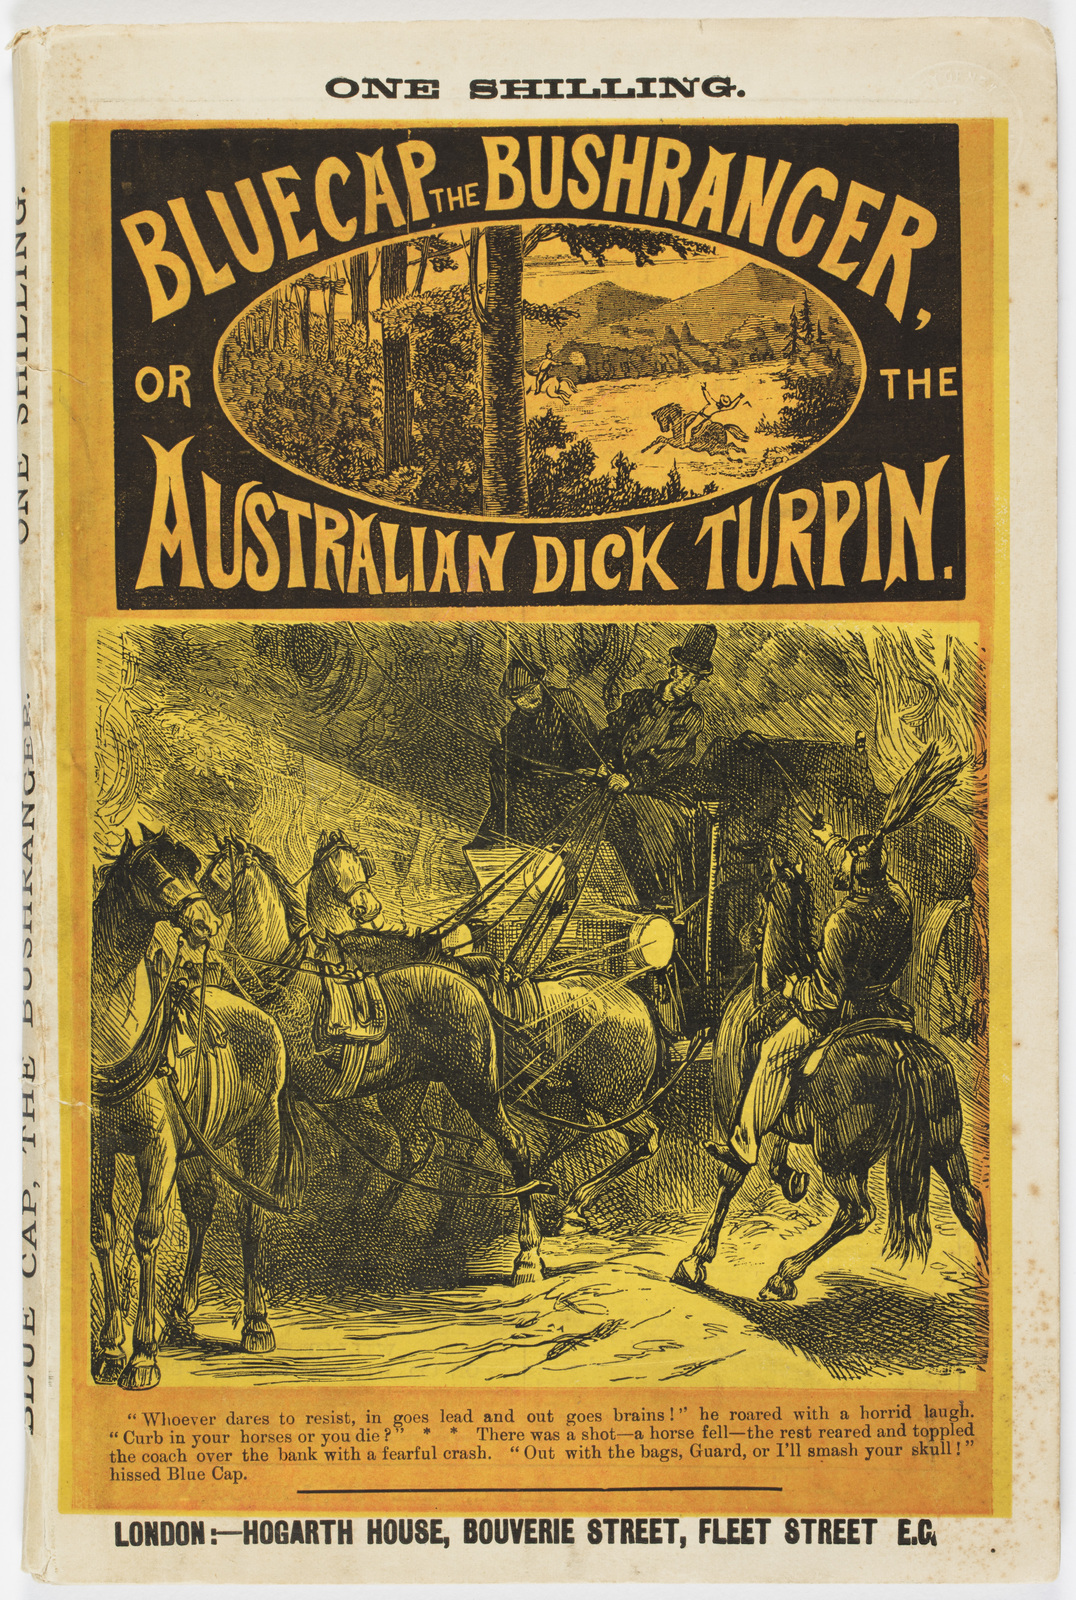 Bluecap, the Bushranger, or, The Australian Dick Turpin